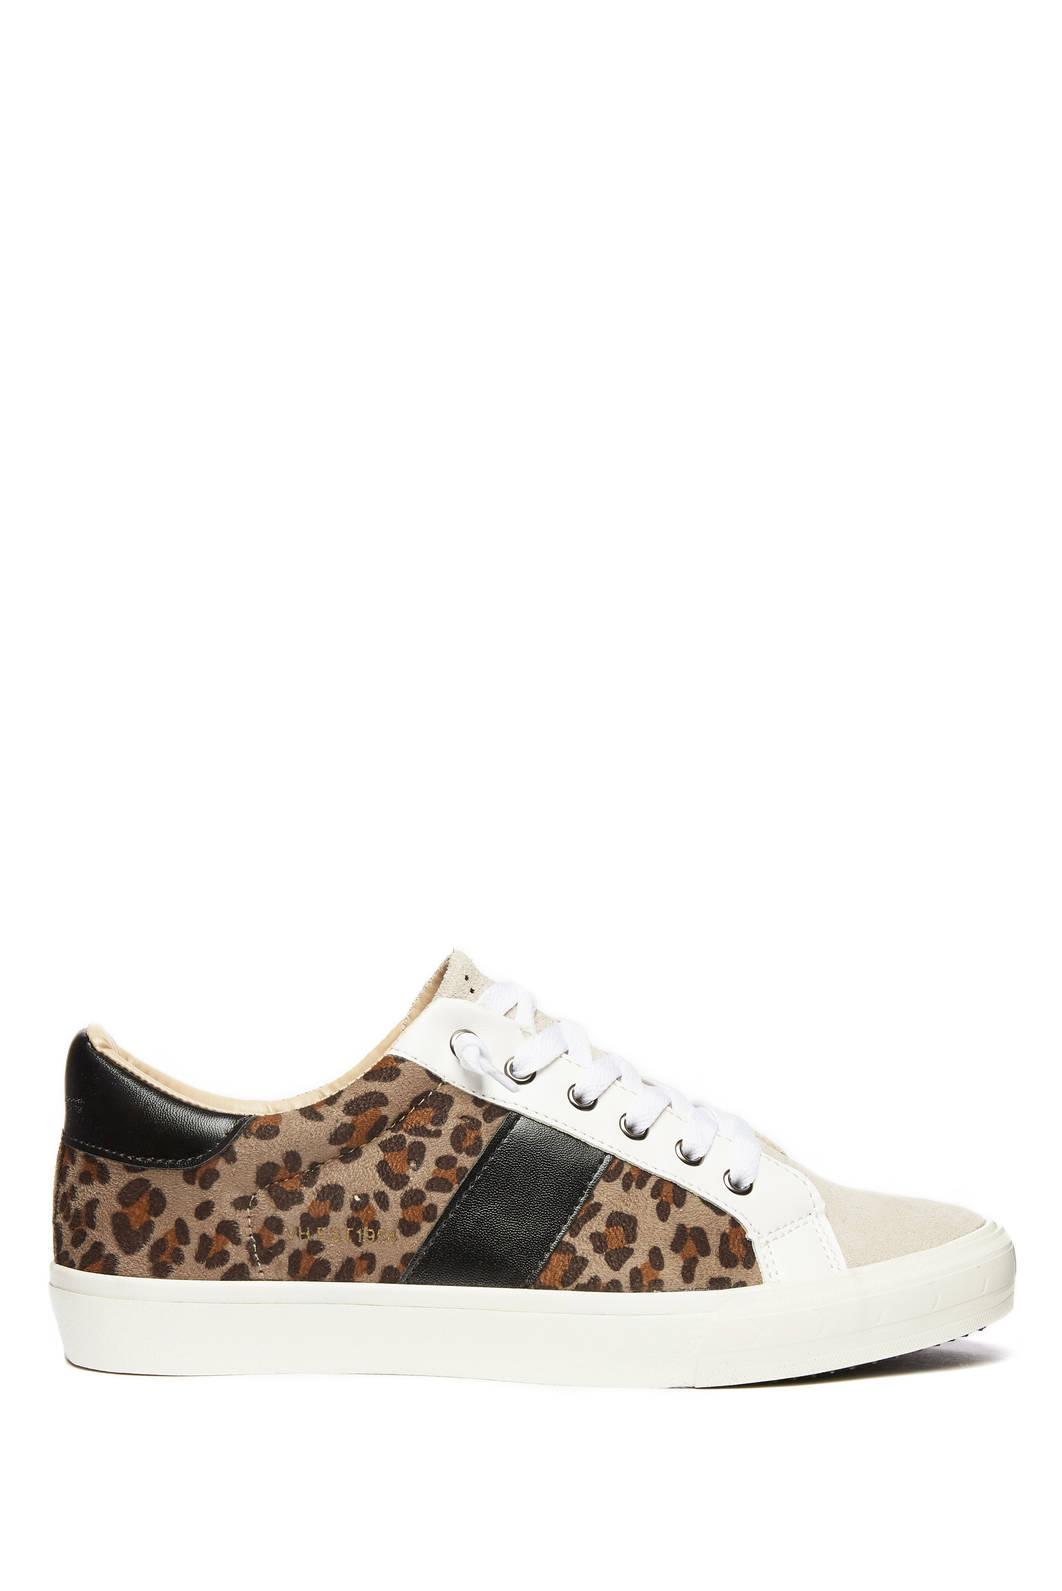 bfa6858b0 Lyst - South Moon Under Dina Leopard Lace Up Sneaker in Brown